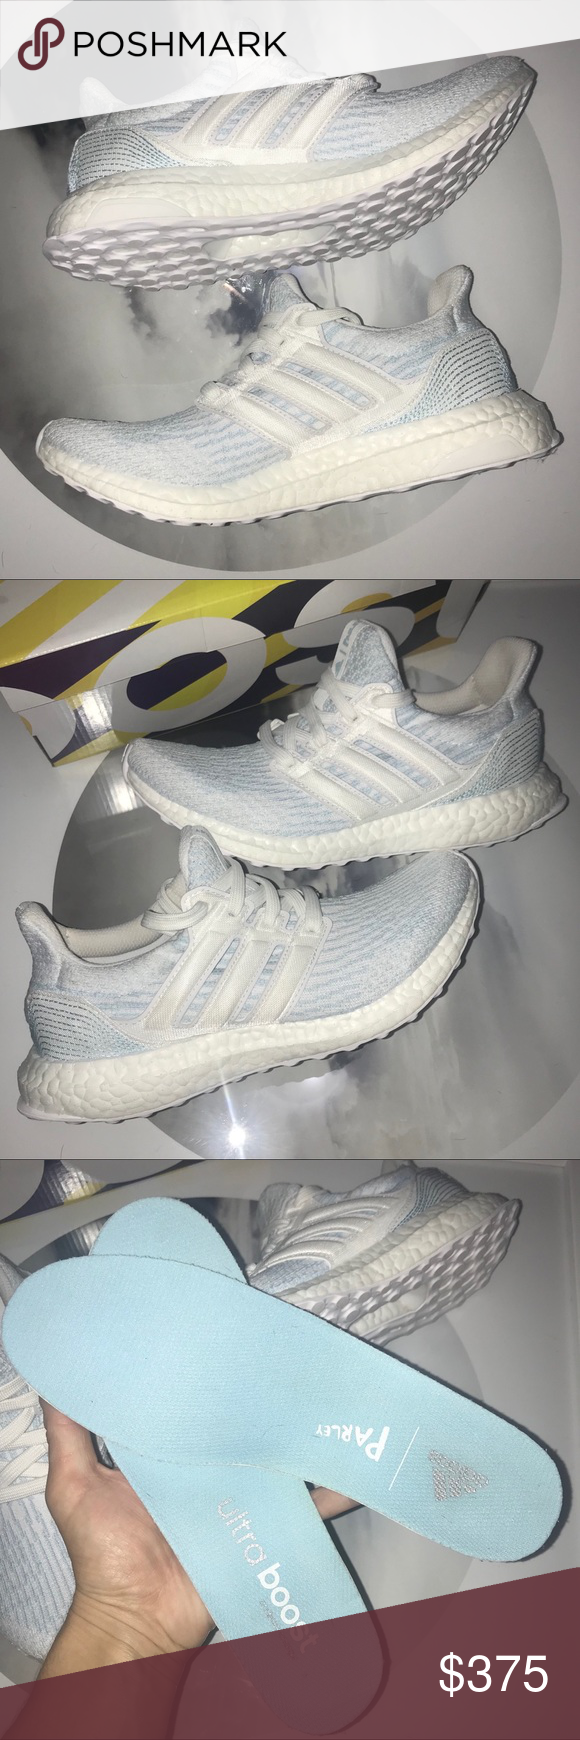 ae5ebea781e3b Adidas Parley Ultra Boost 3.0 White Ice Blue 6 7.5 New in Box. Limited  Edition